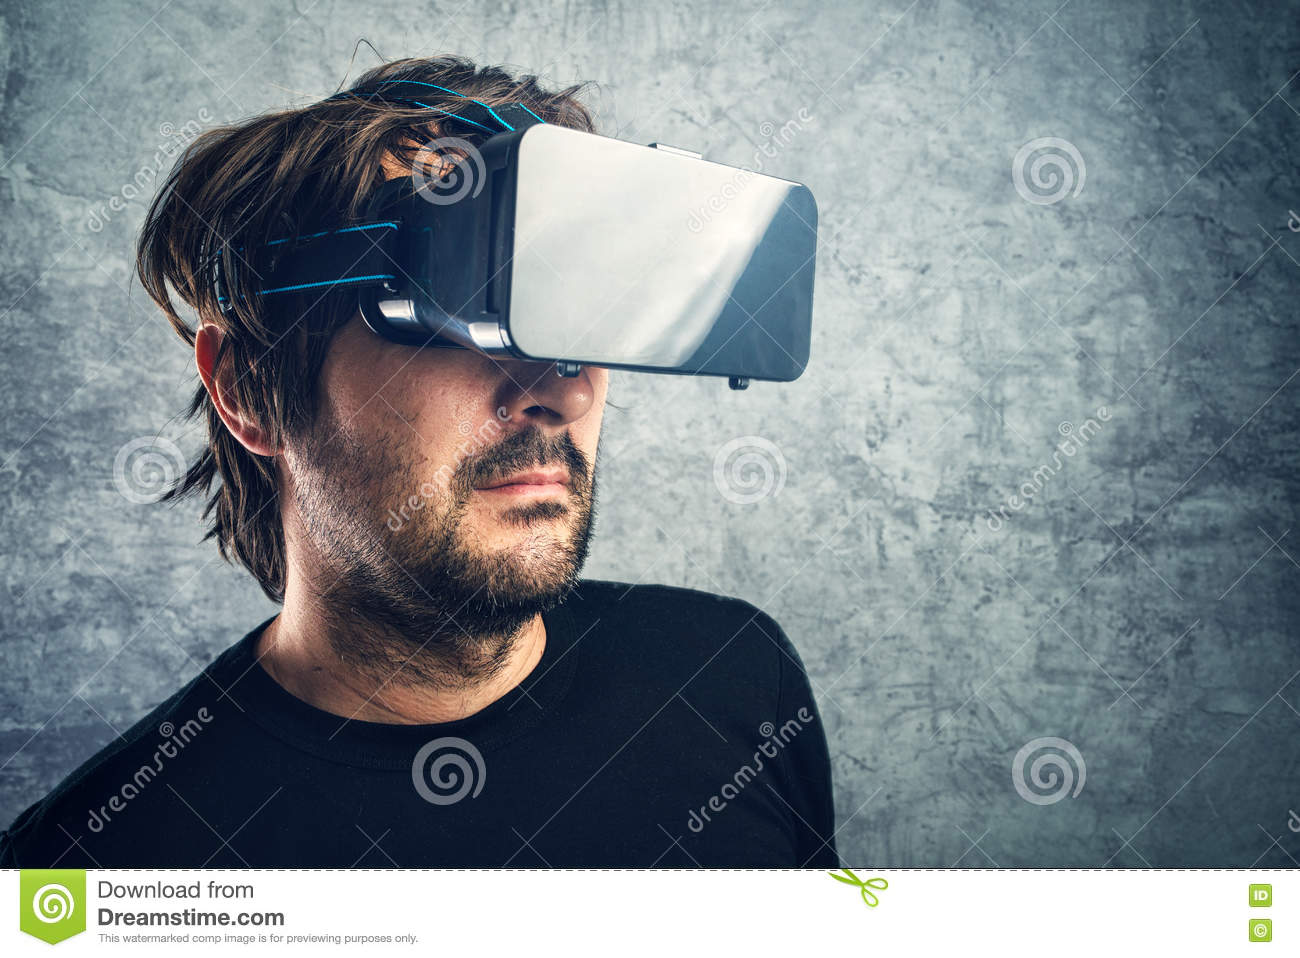 73df8288be8 Man 3d Vr Goggles Enjoying Virtual Reality Stock Images - Download 111  Royalty Free Photos